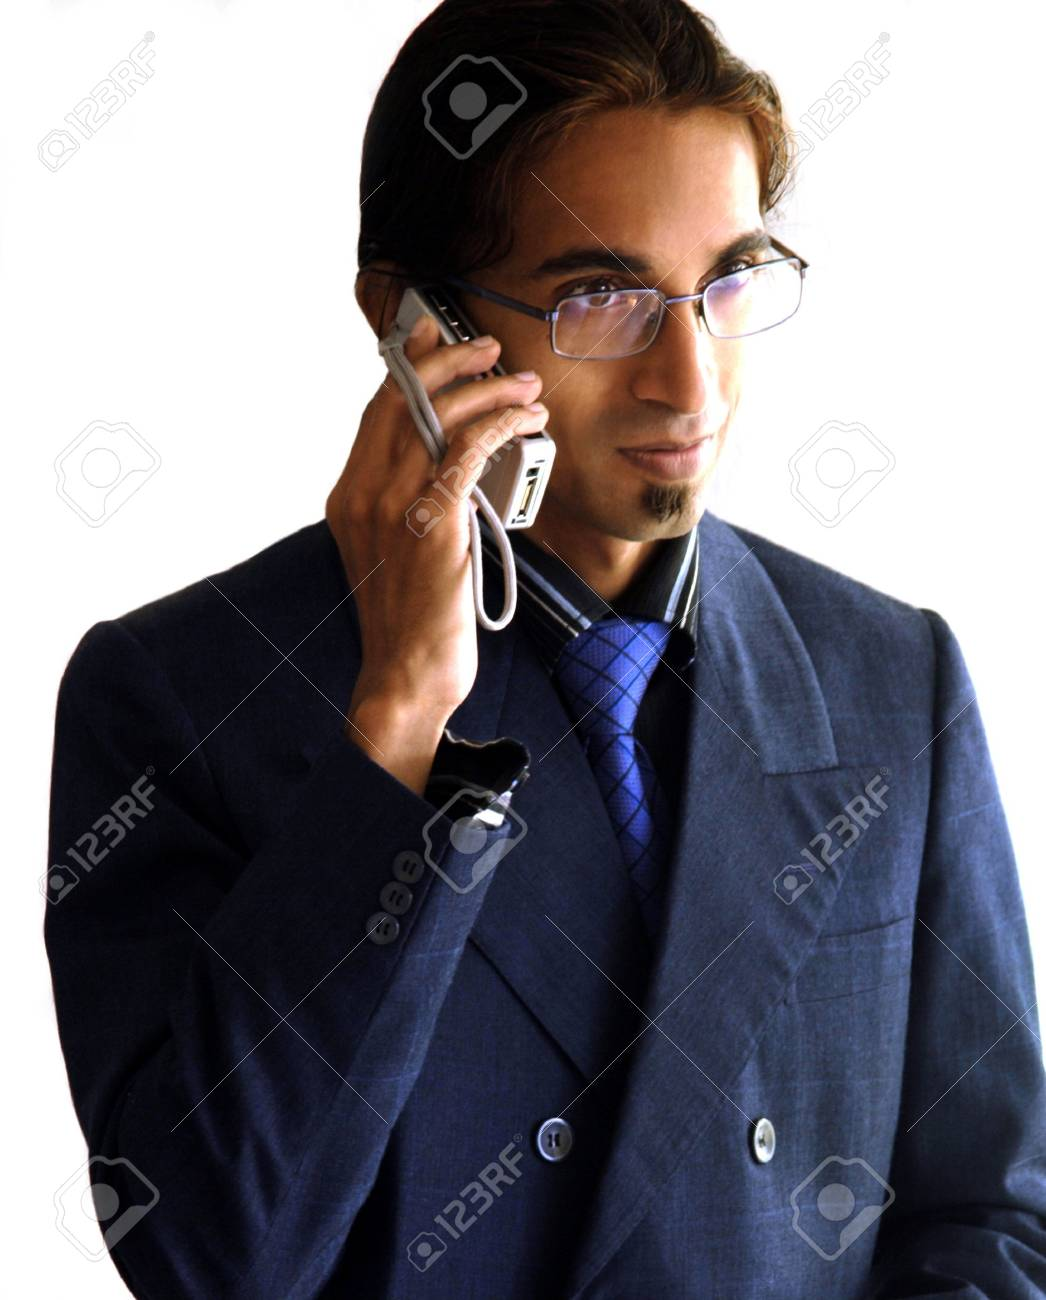 Business man on the phone - 3508547